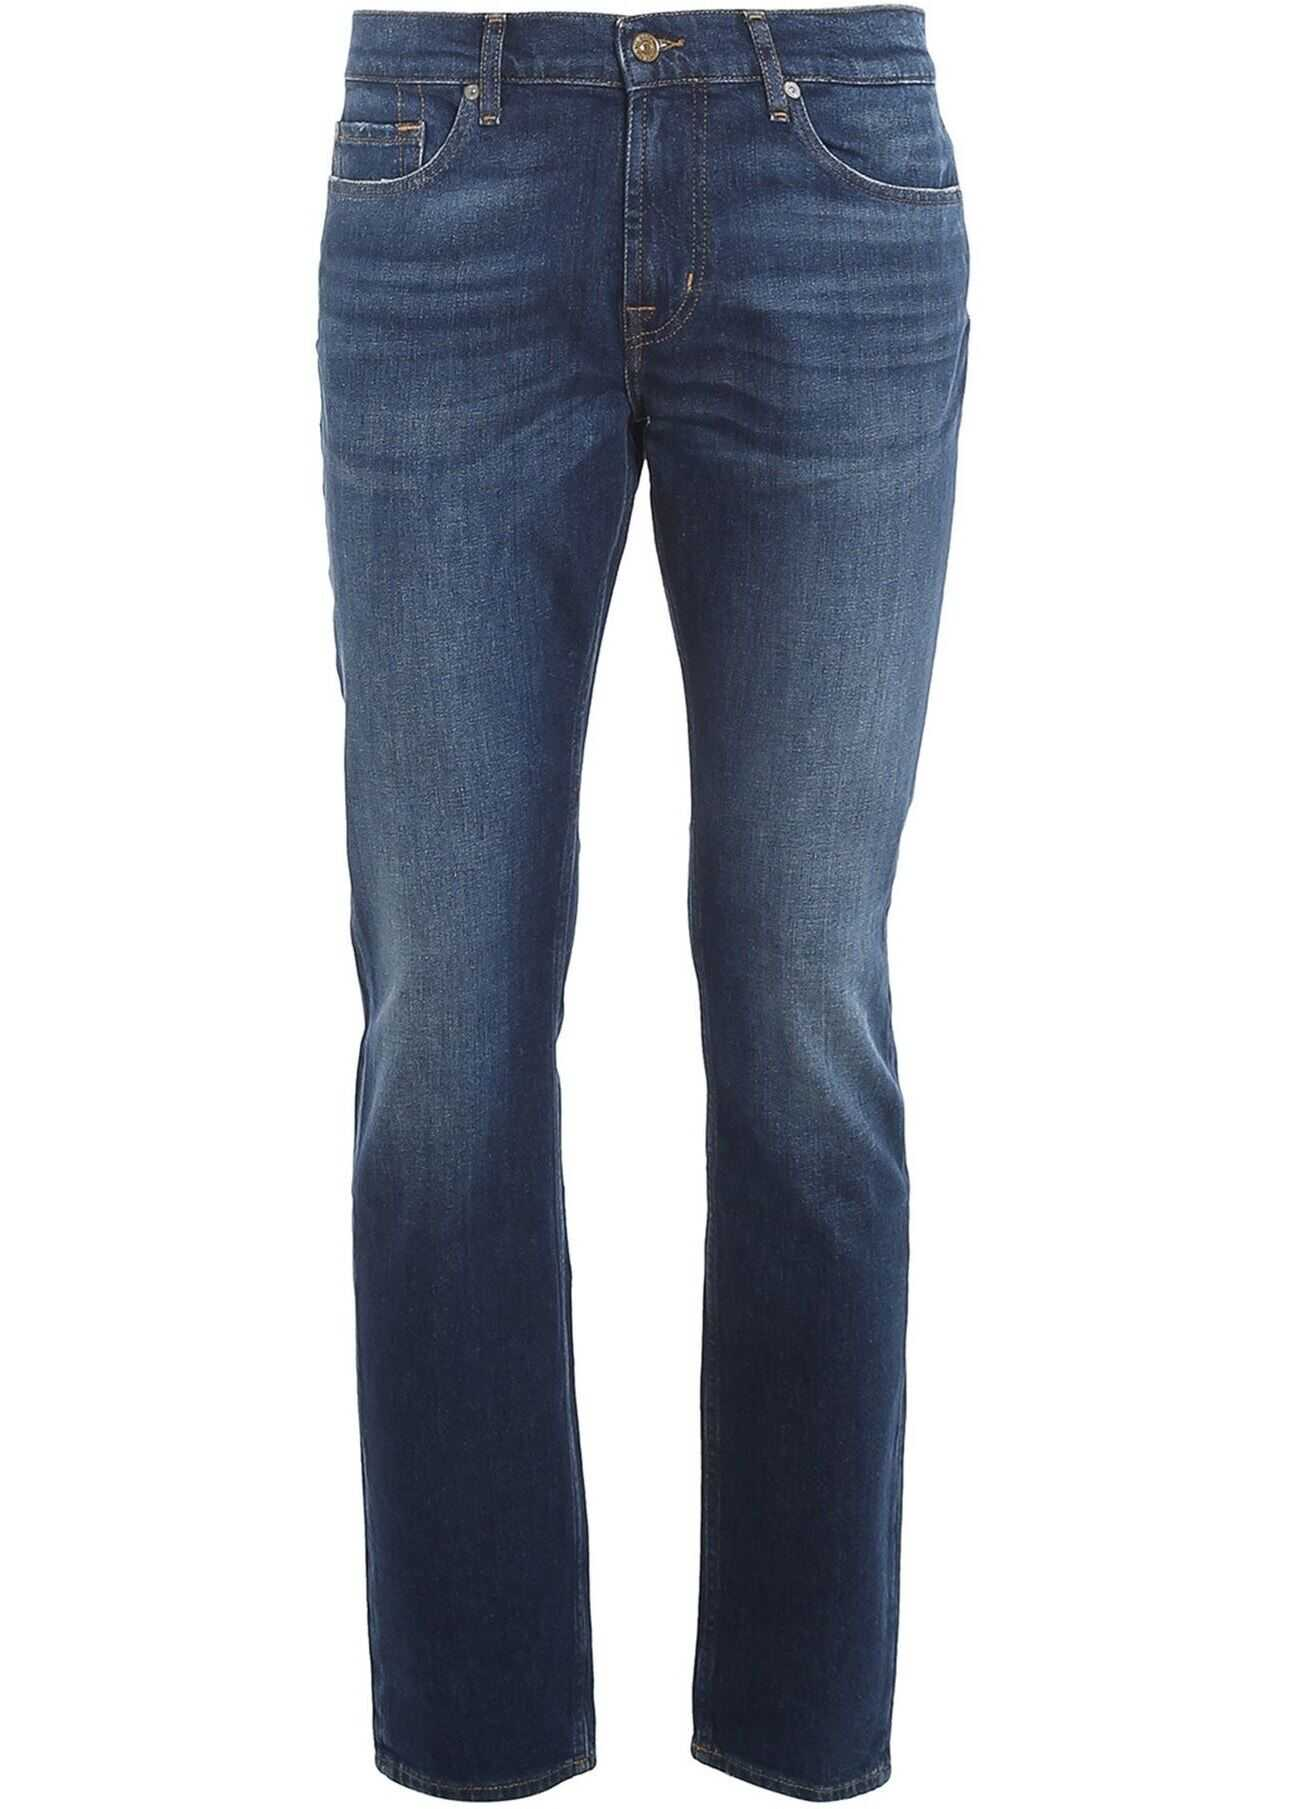 7 For All Mankind Ronnie Crux Jeans In Blue Blue imagine